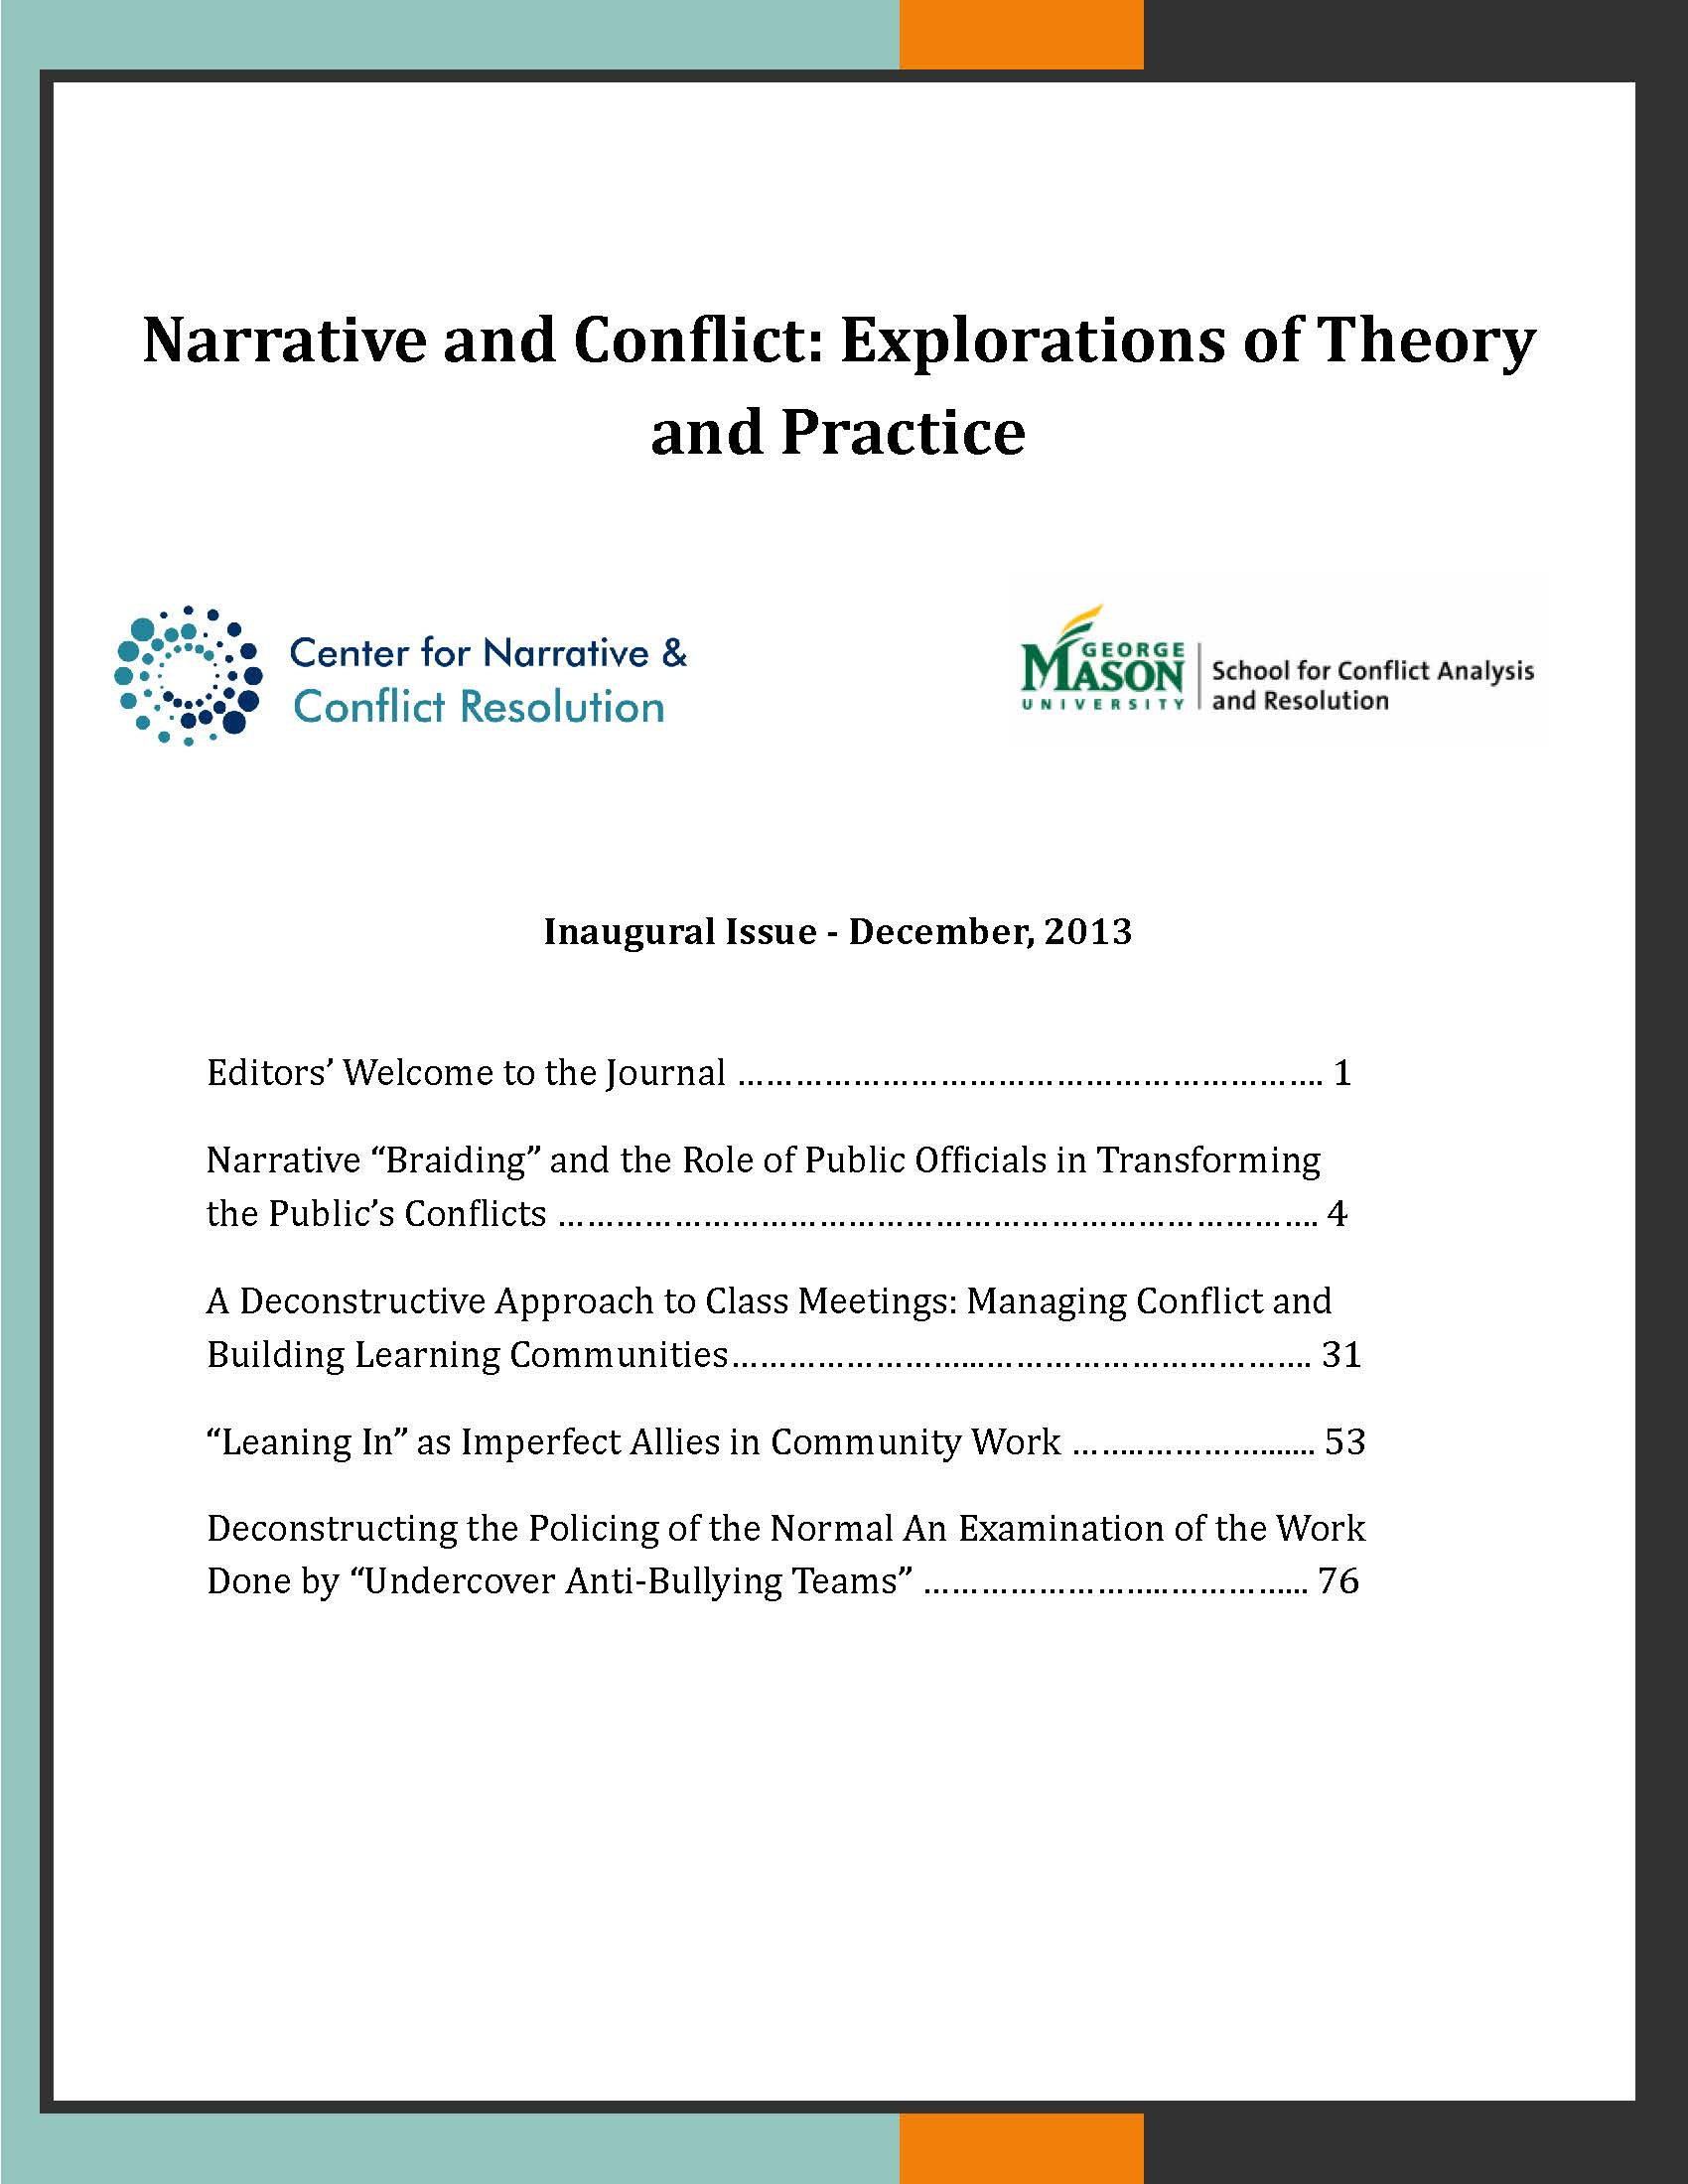 Narrative and Conflict: Explorations of Theory and Practice. Inaugural Issue - December, 2013. Center for Narrative and Conflict Resolution, George Mason University School for Conflict Analysis and Resolution.